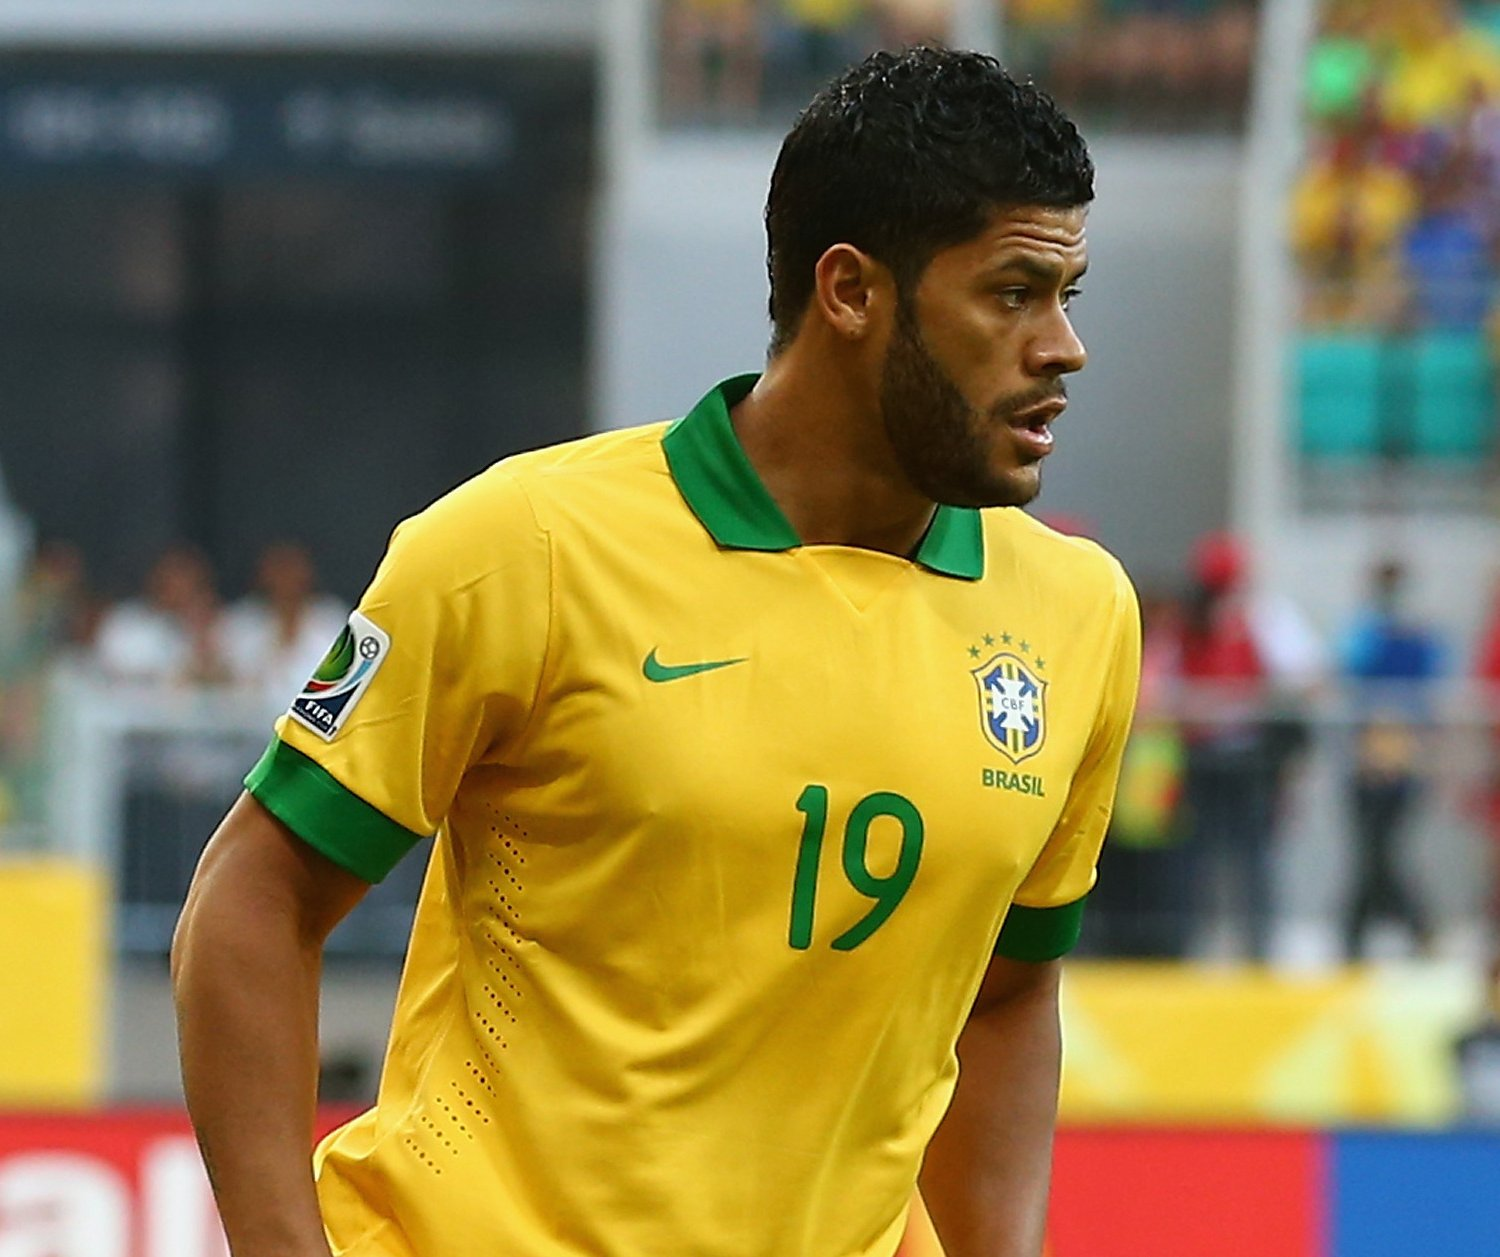 Hulk Brazil Football: 6 Of The Most Overrated Players In World Football